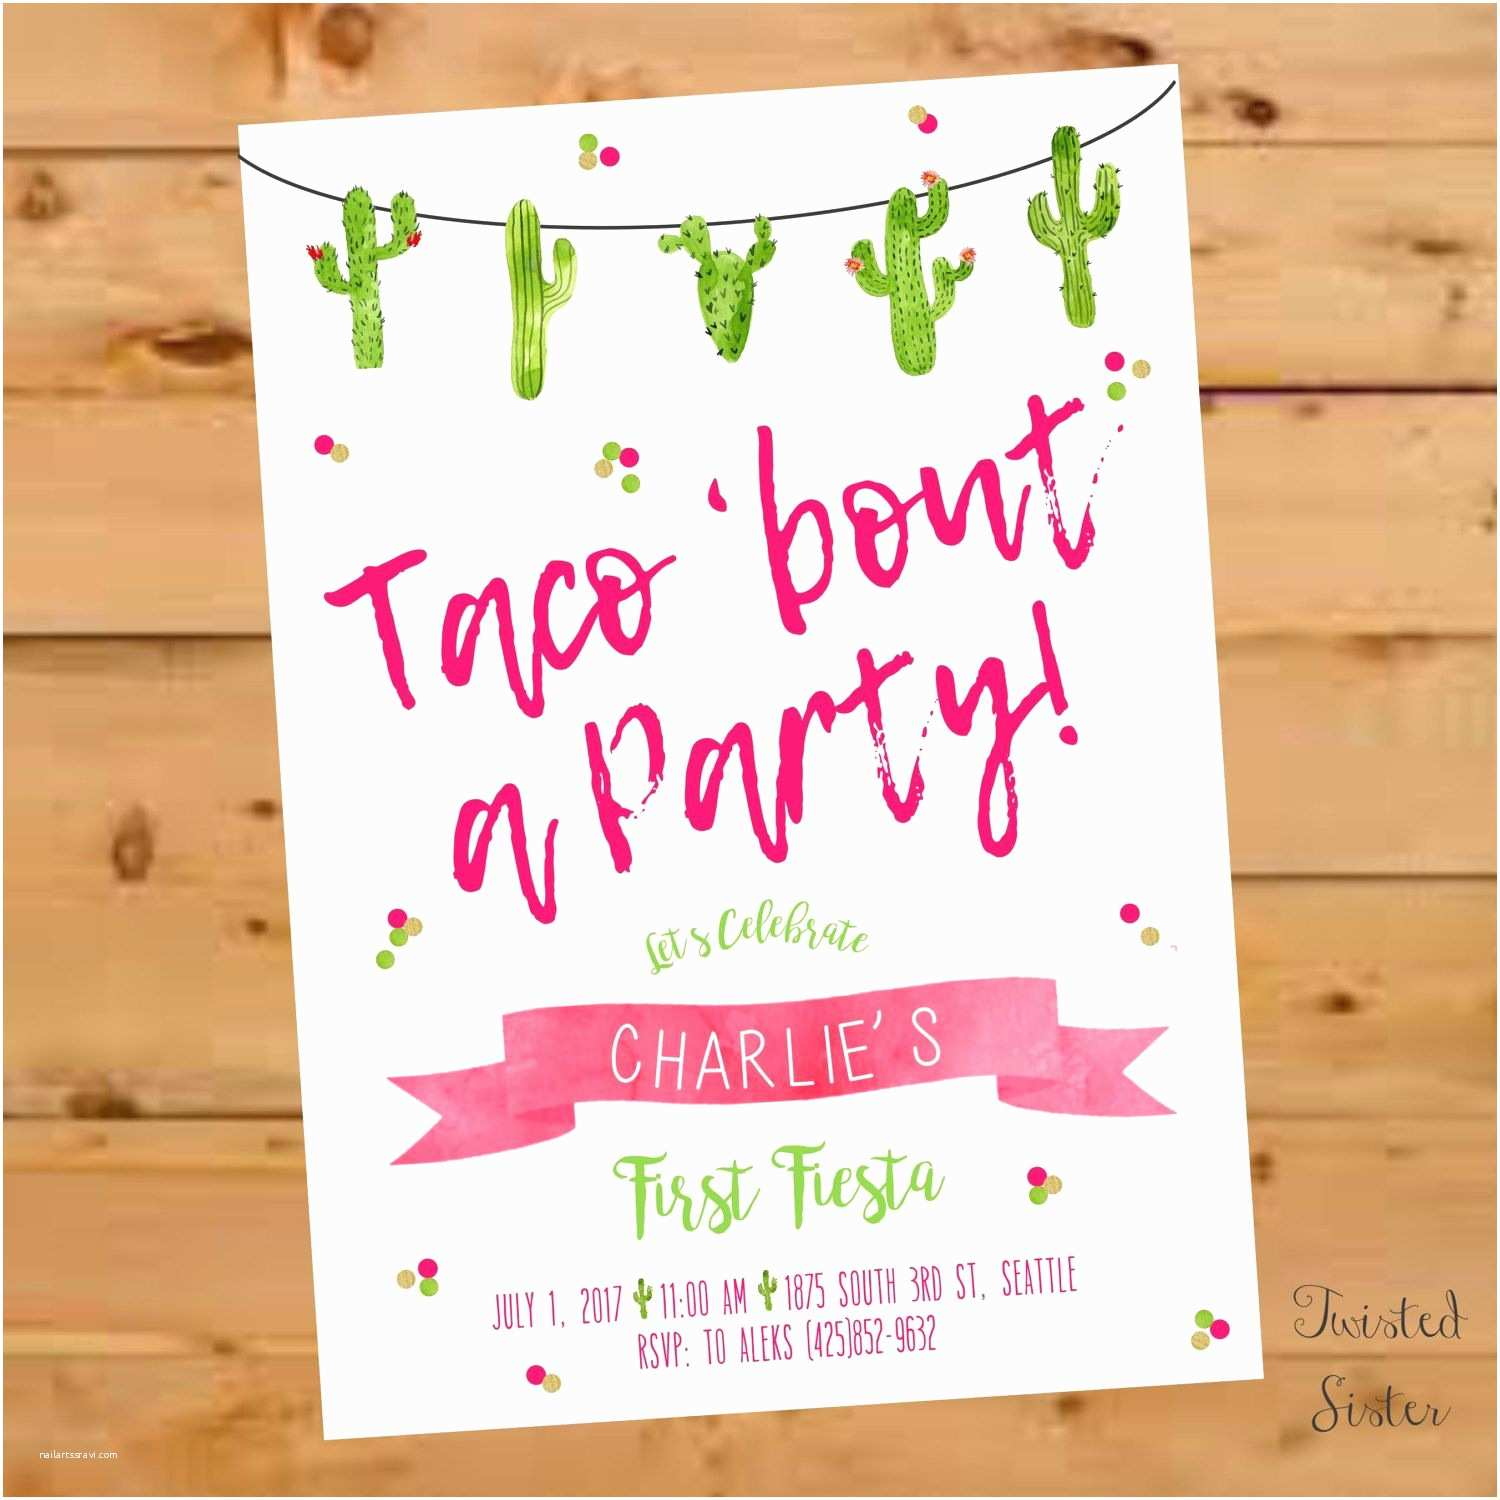 Taco Party Invitation Taco Bout A Party Invitation Taco Bout A Party Invite